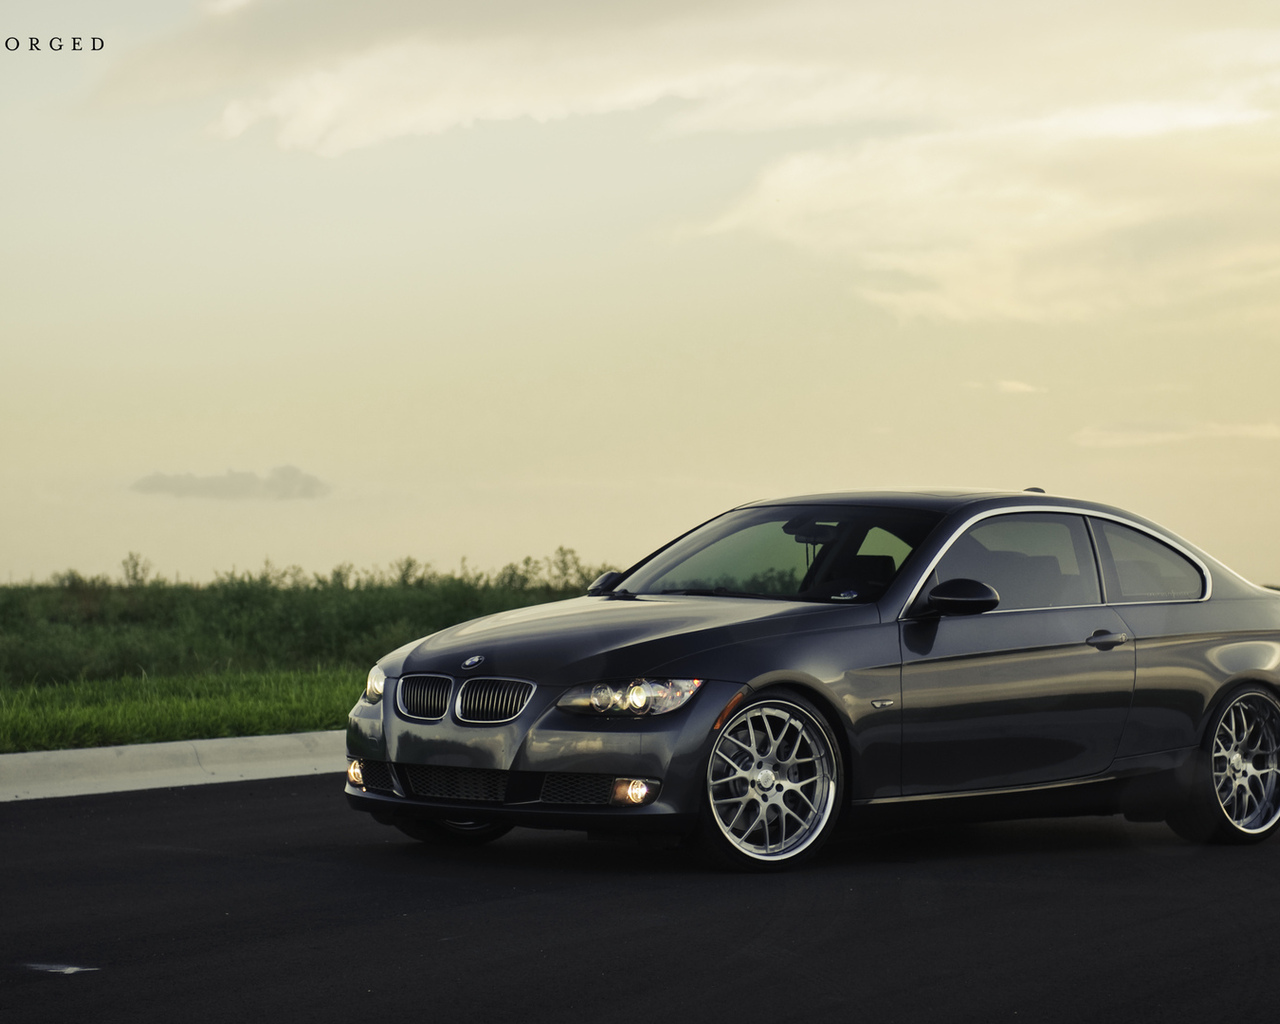 m3, bmw, газон, 360 three sixty forged, 335i, передняя часть, трава, бмв